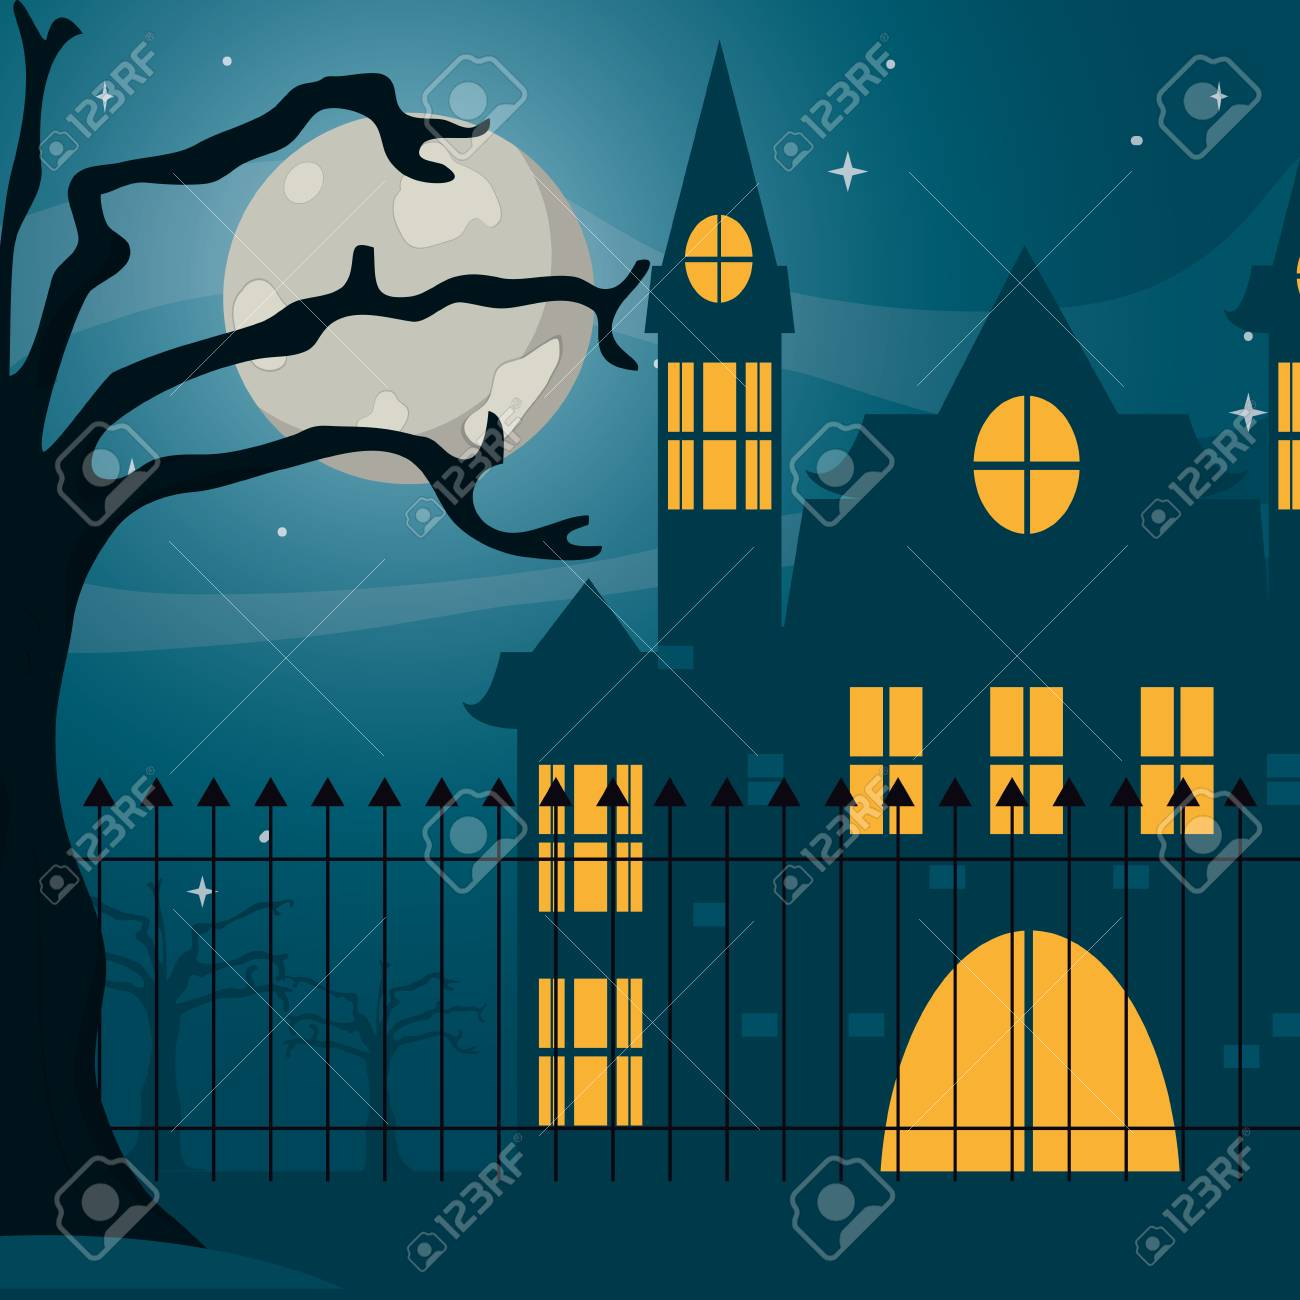 Halloween haunted house at cemetery vector illustration graphic design vector illustration graphic design - 109762541